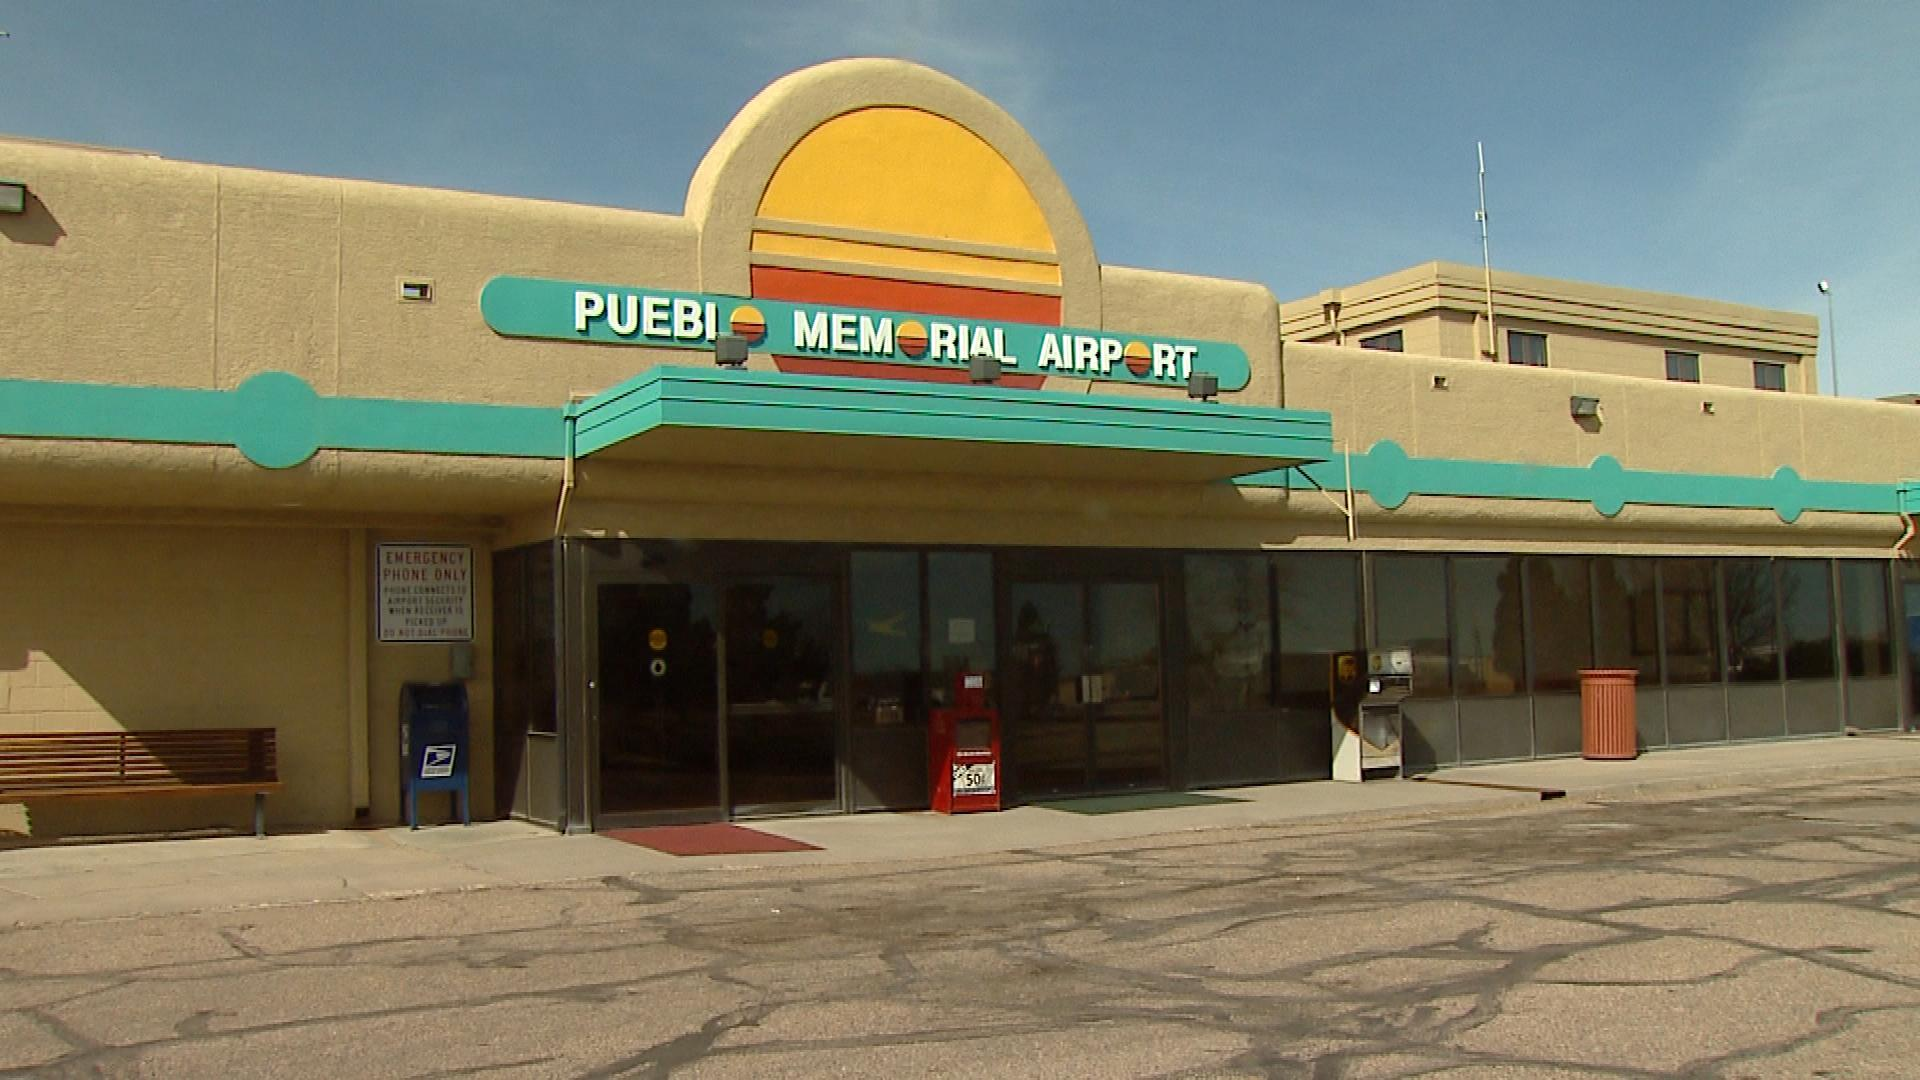 The Pueblo Memorial Airport (credit: CBS)